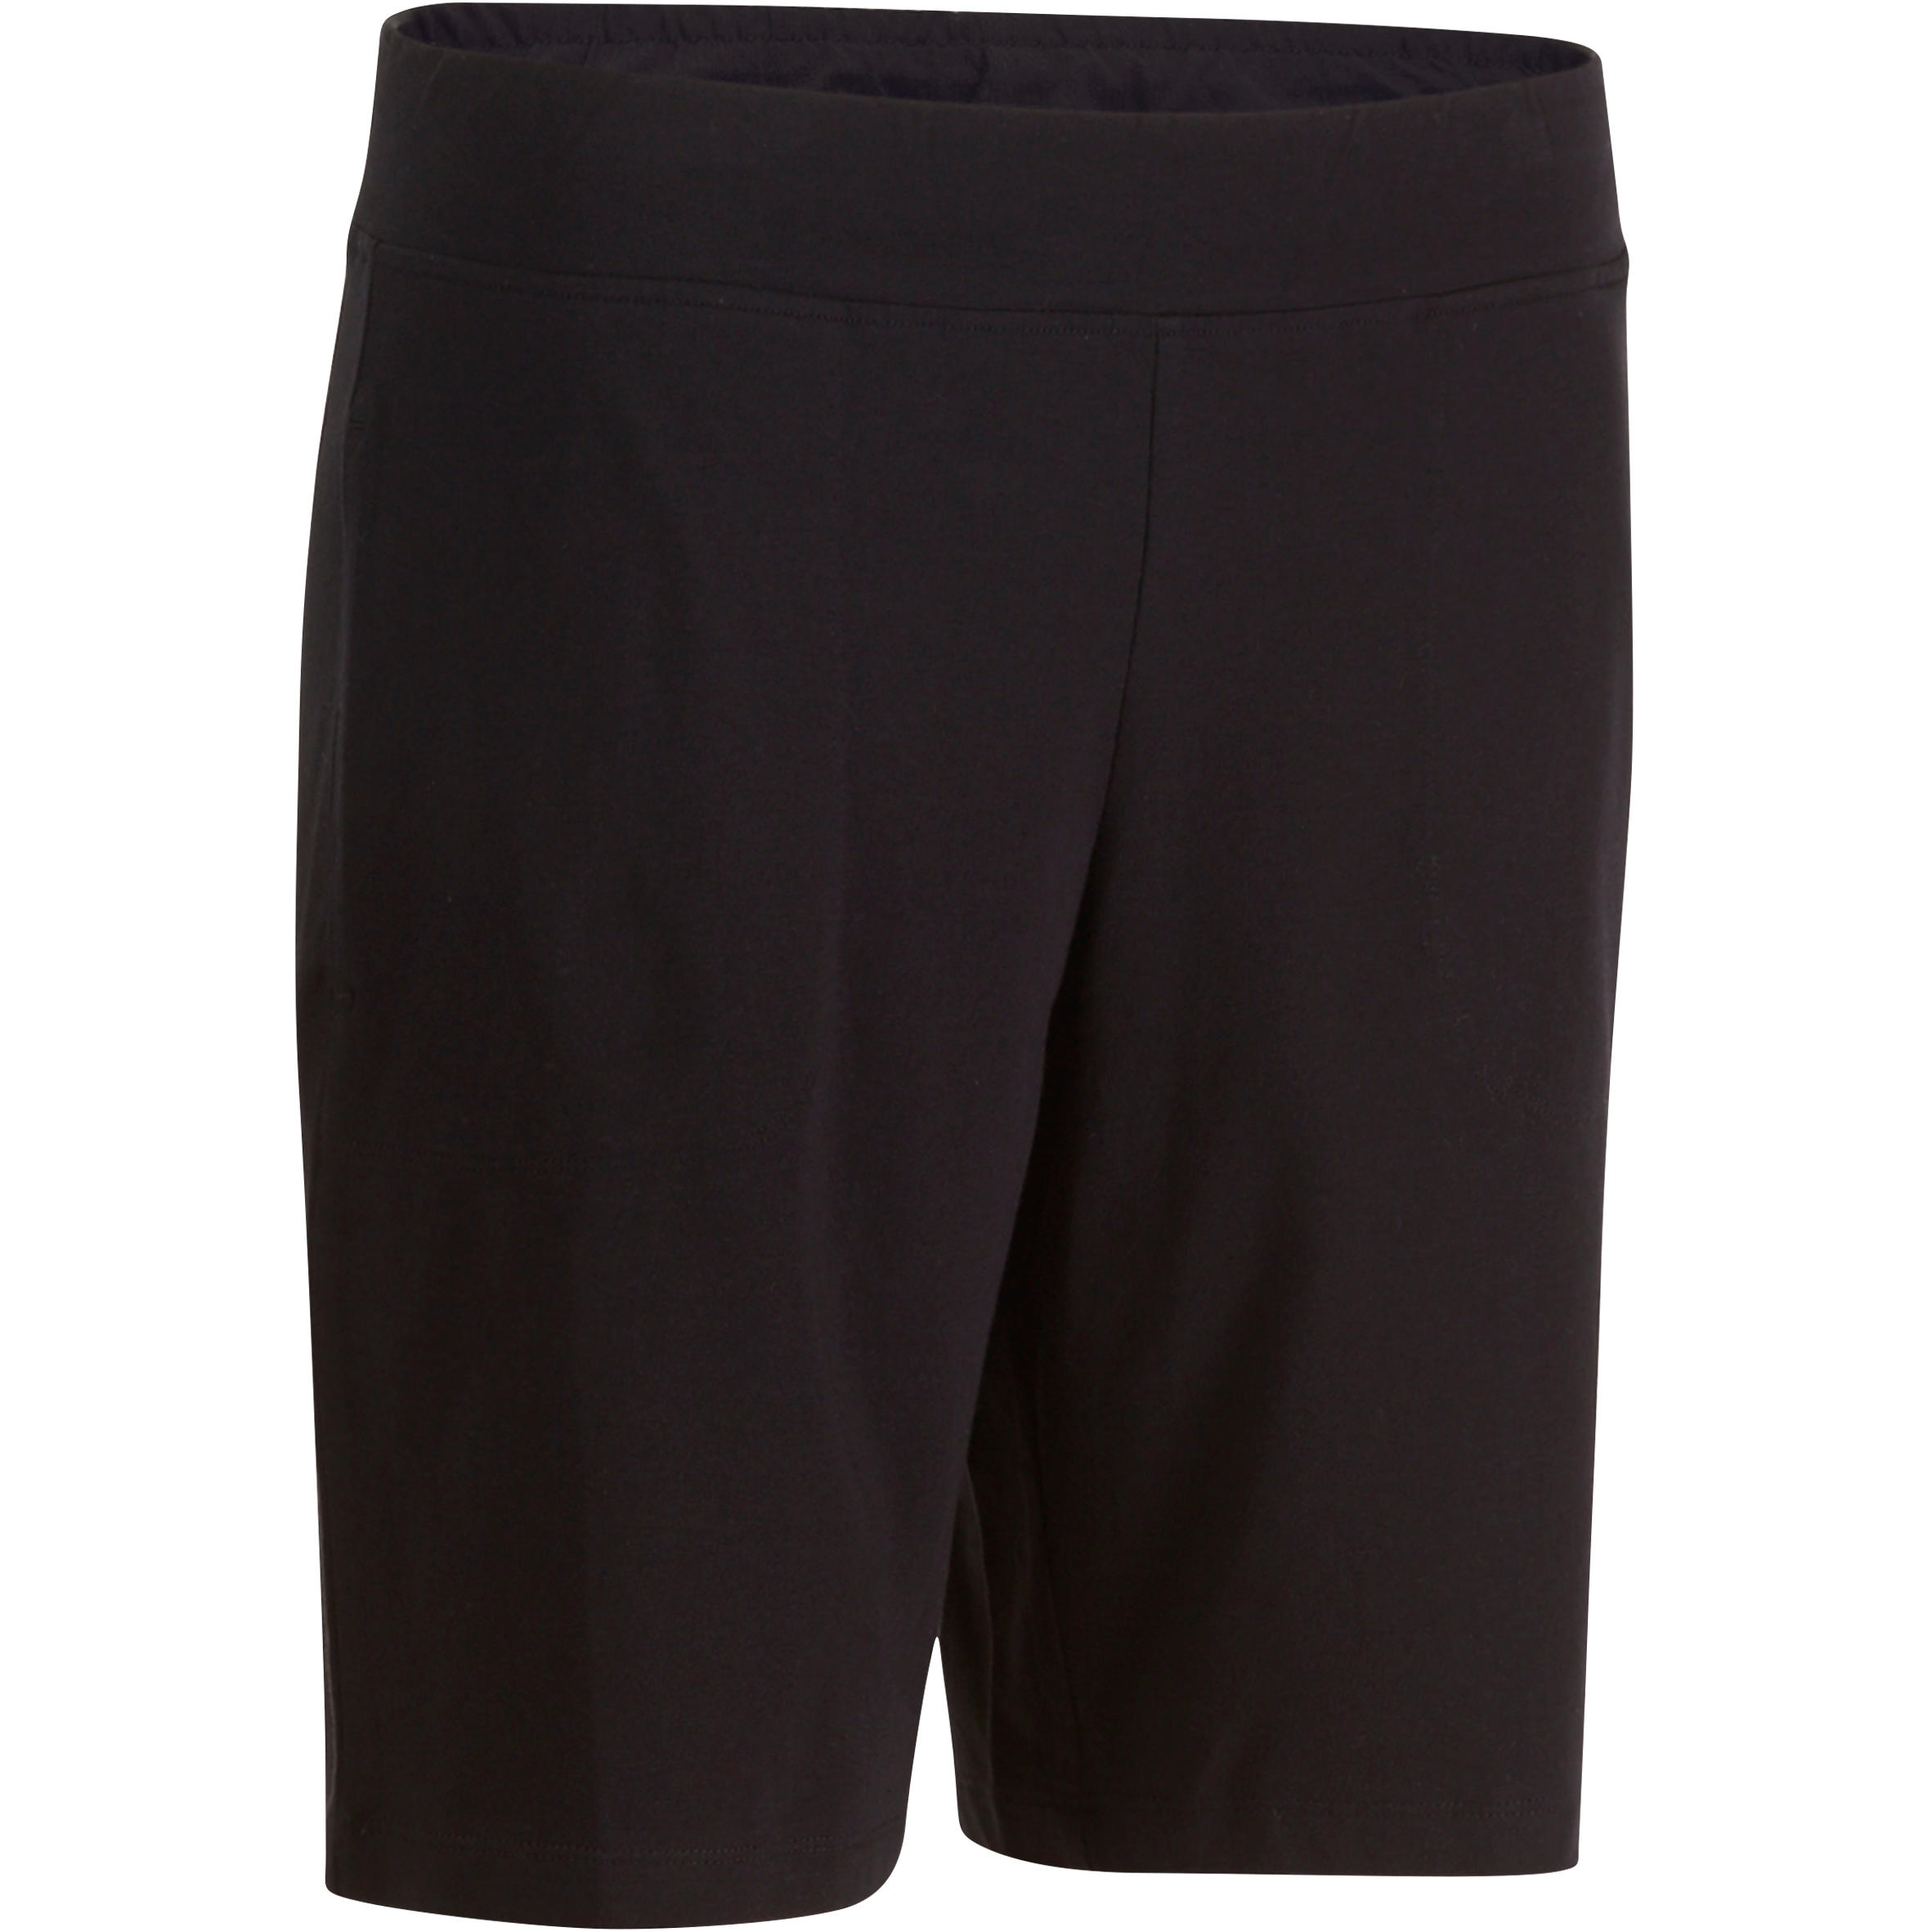 FIT+ 500 Women's Regular-Fit Stretching Shorts - Black